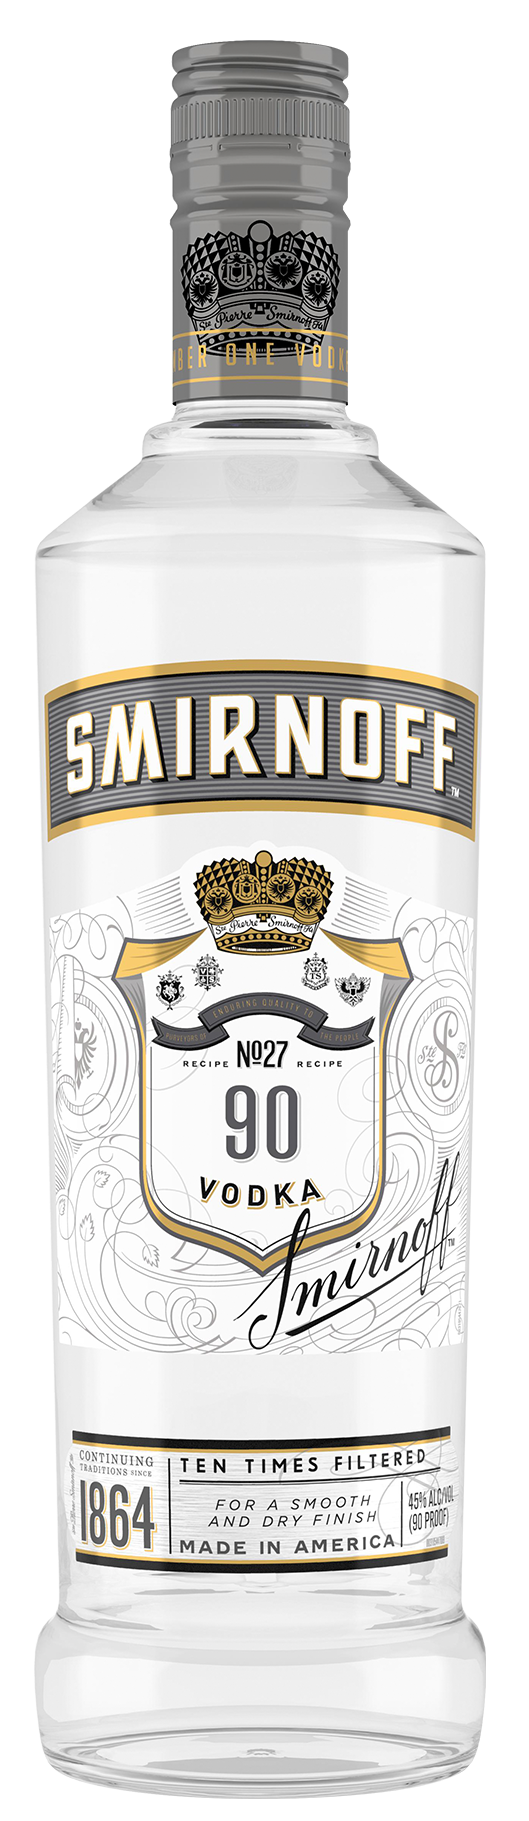 SMIRNOFF 90 PROOF VODKA